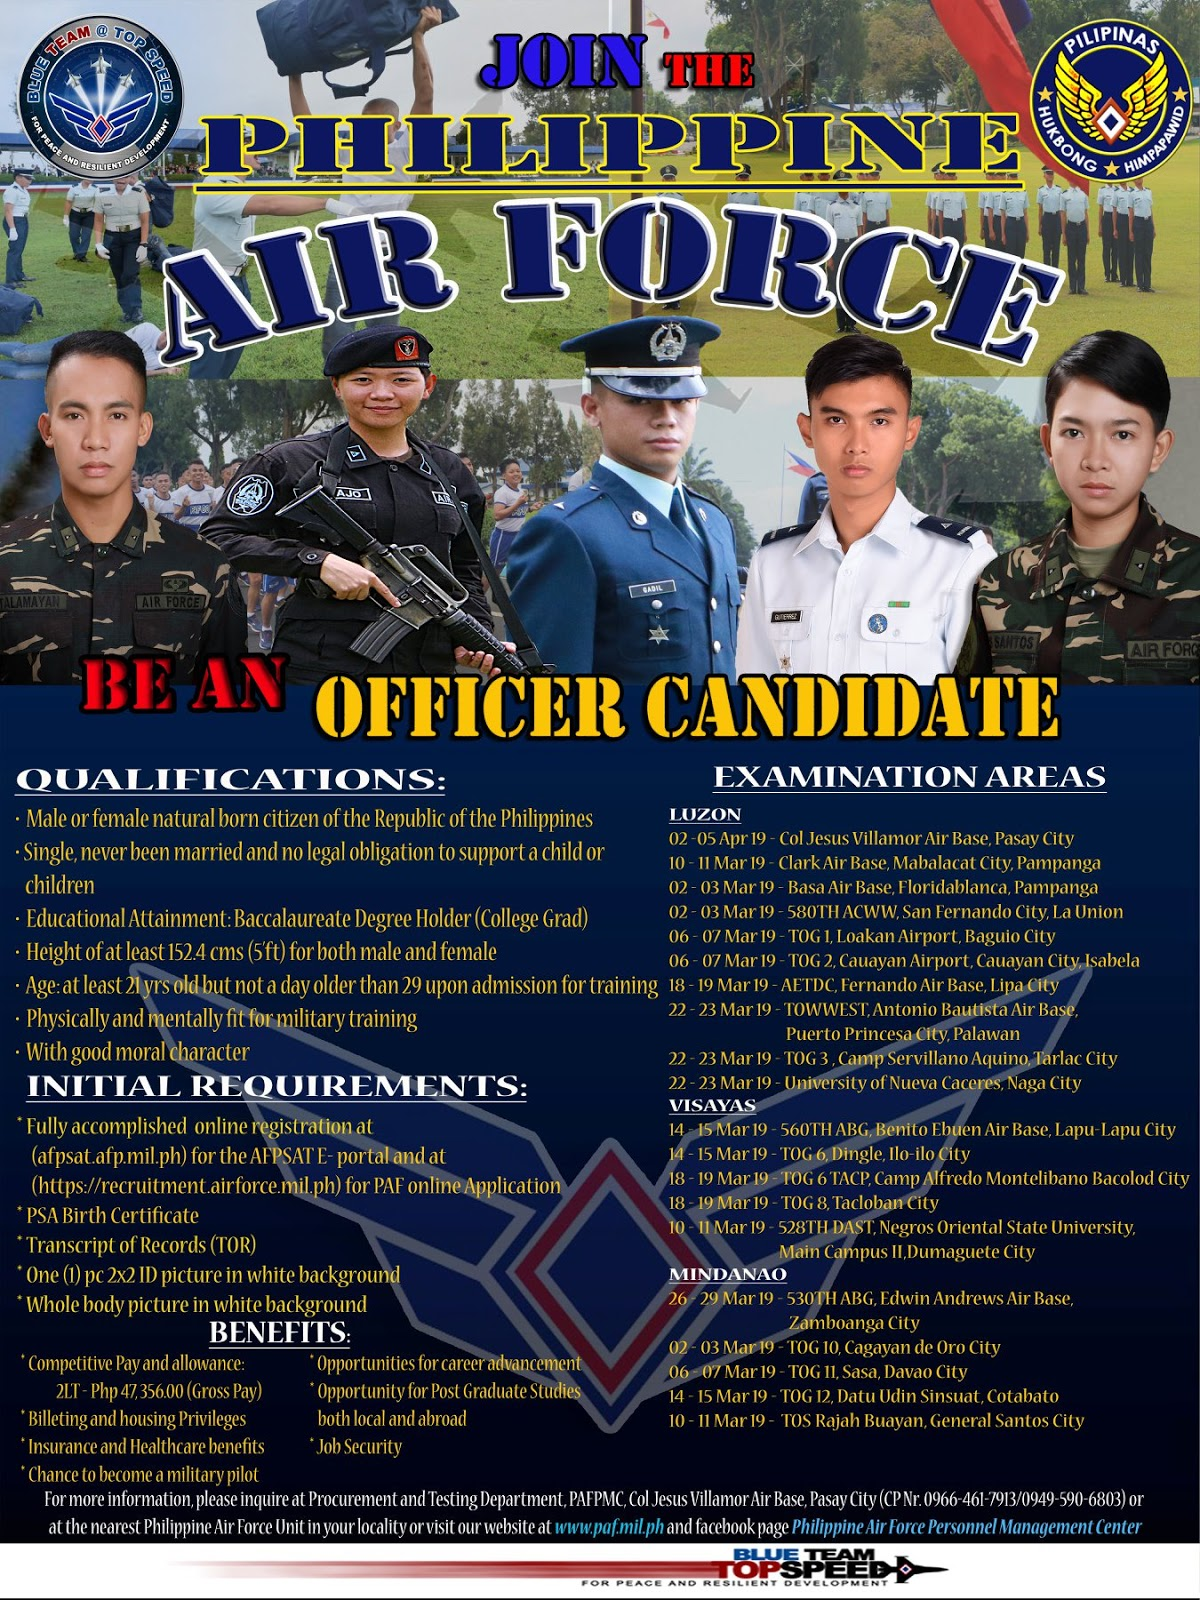 Join the Philippine Air Force - Be an Officer Candidate!